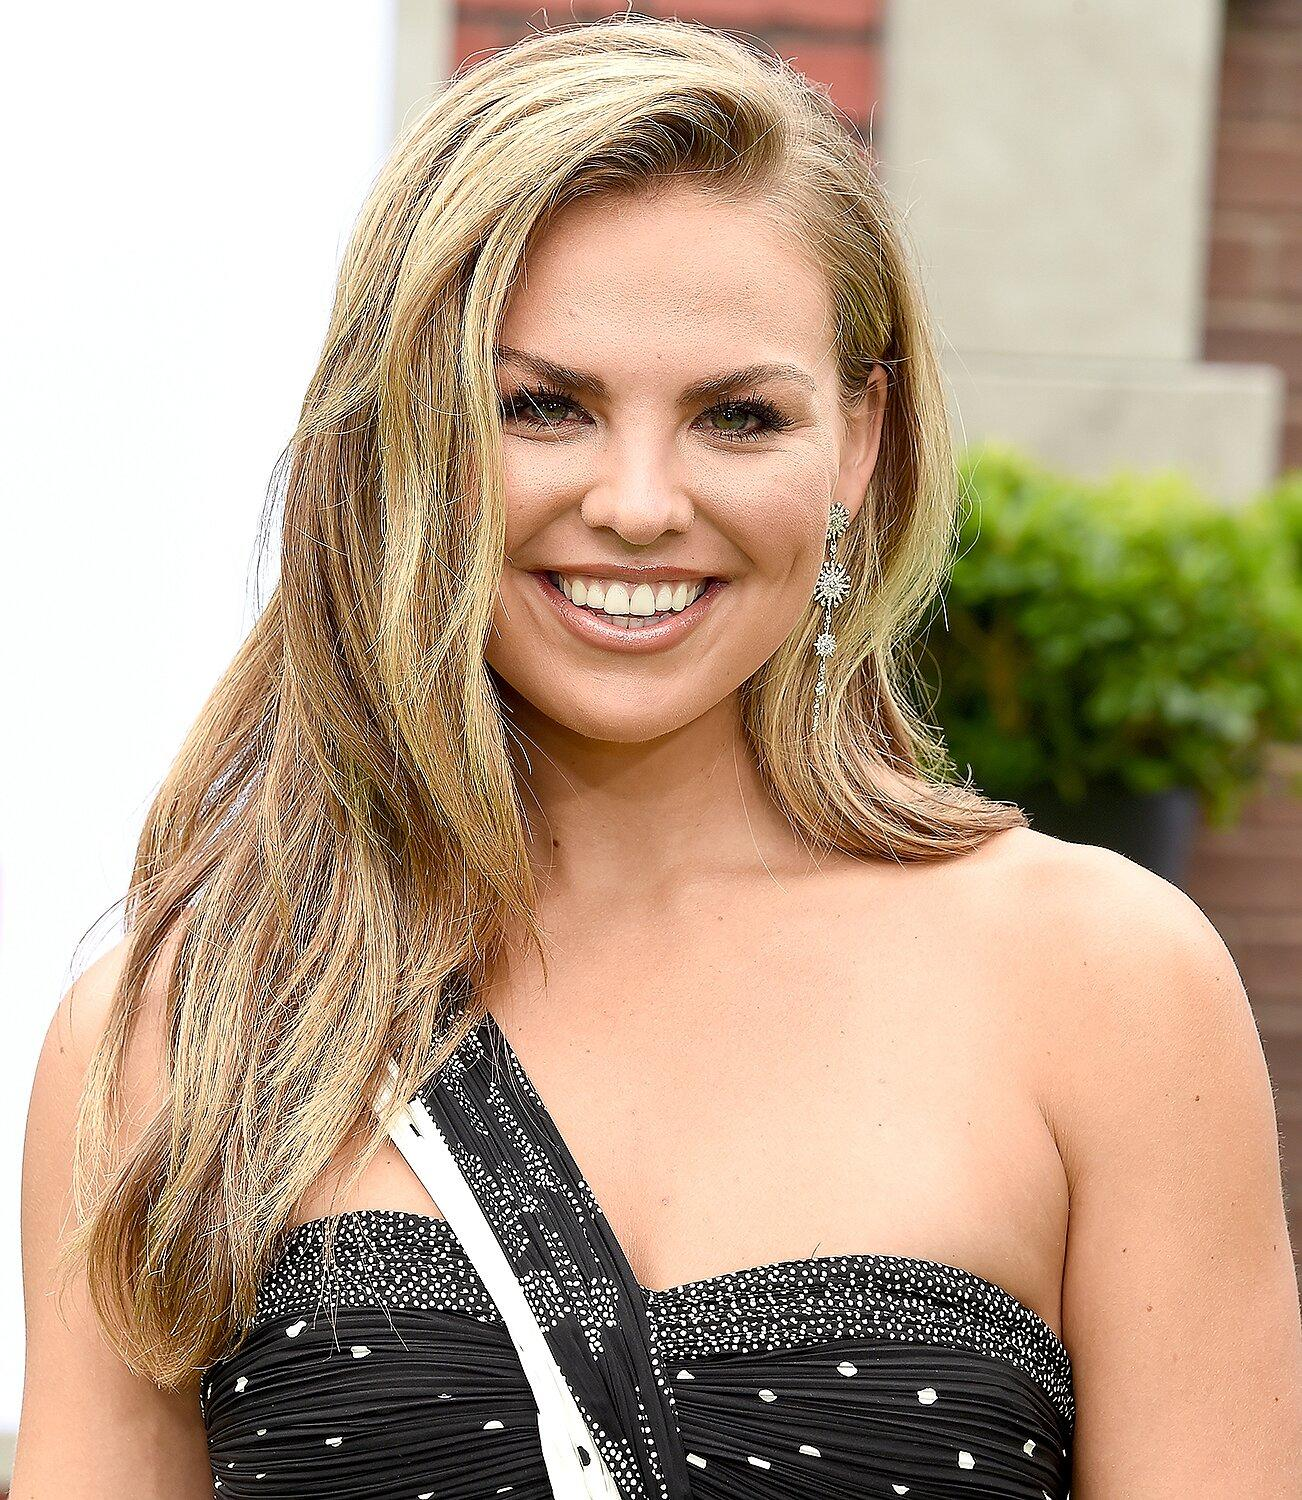 Former Bachelorette Hannah Brown Poses Nude in Steamy